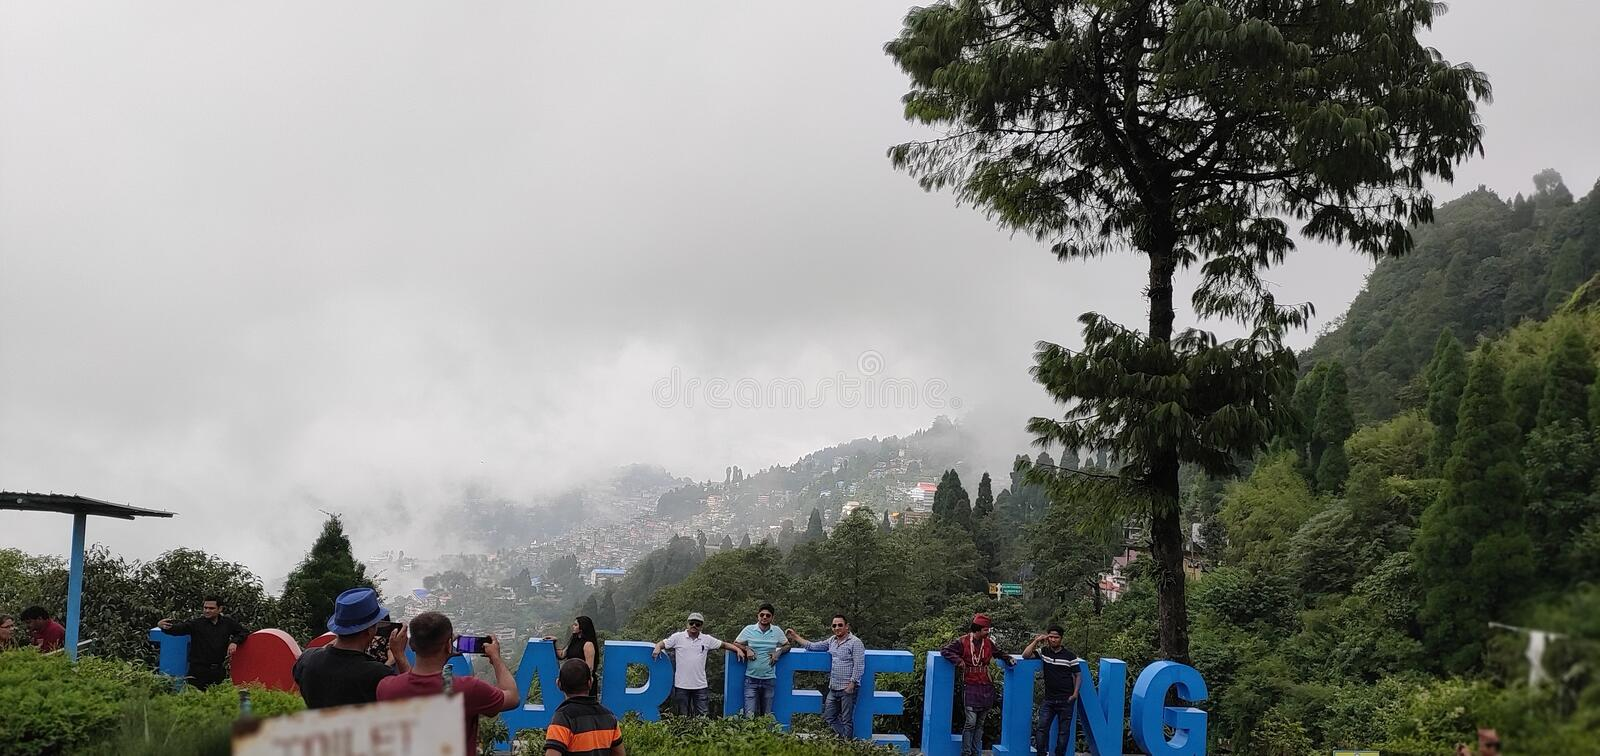 Beauty of Darjeeling in Darjeeling district. This picture has taken by me in Darjeeling. It is a tourists place named Batasia Loop. People are hanging around royalty free stock images